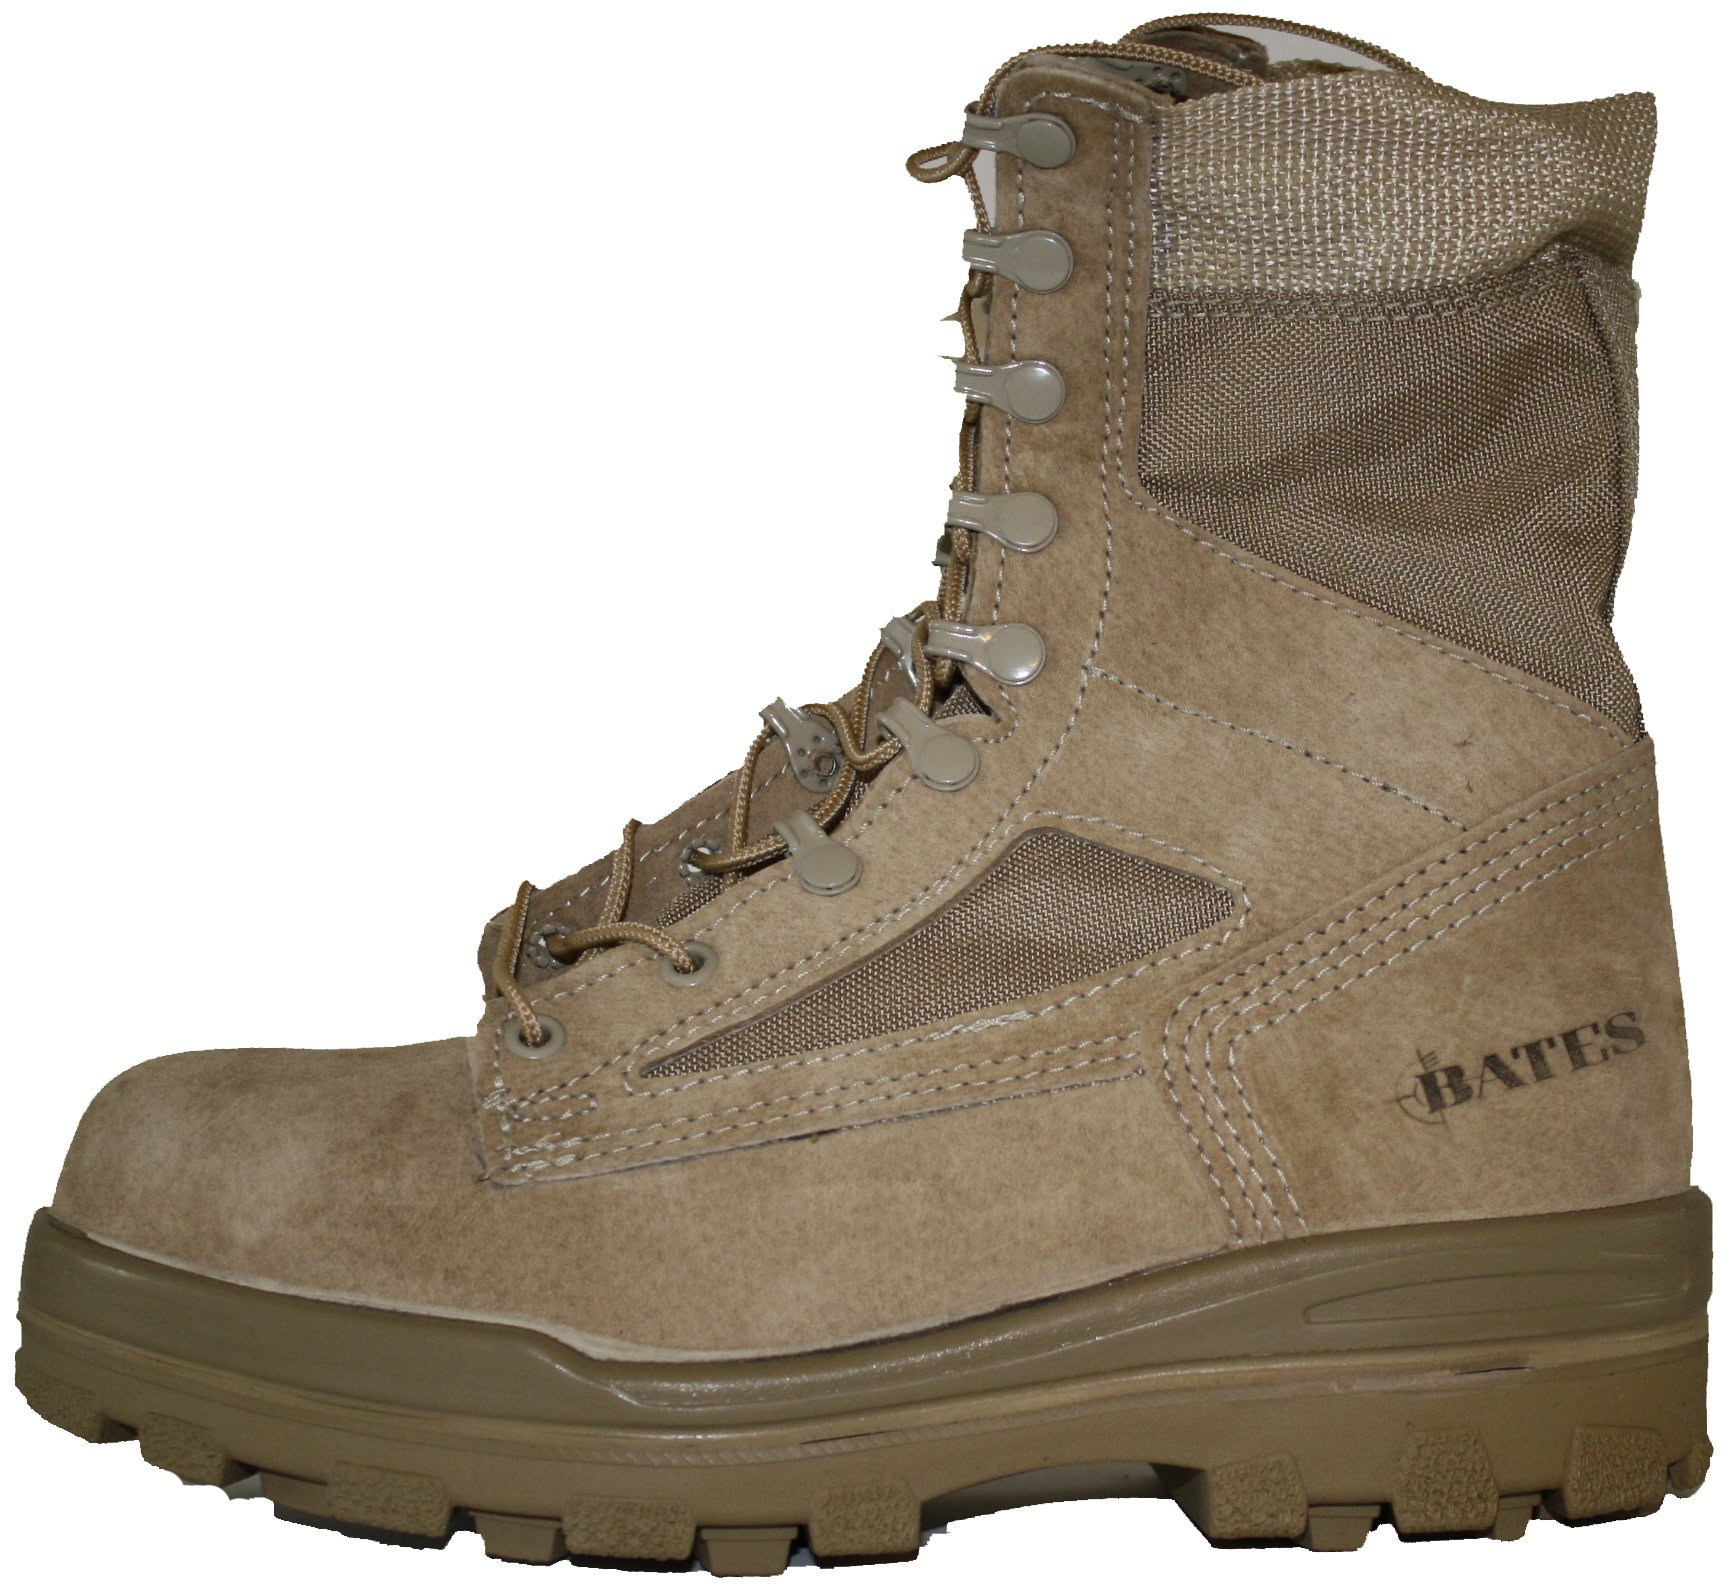 Bates Women's 8 Inches Durashocks Steel Toe Boot,Desert Sand,10 M US by Bates (Image #2)